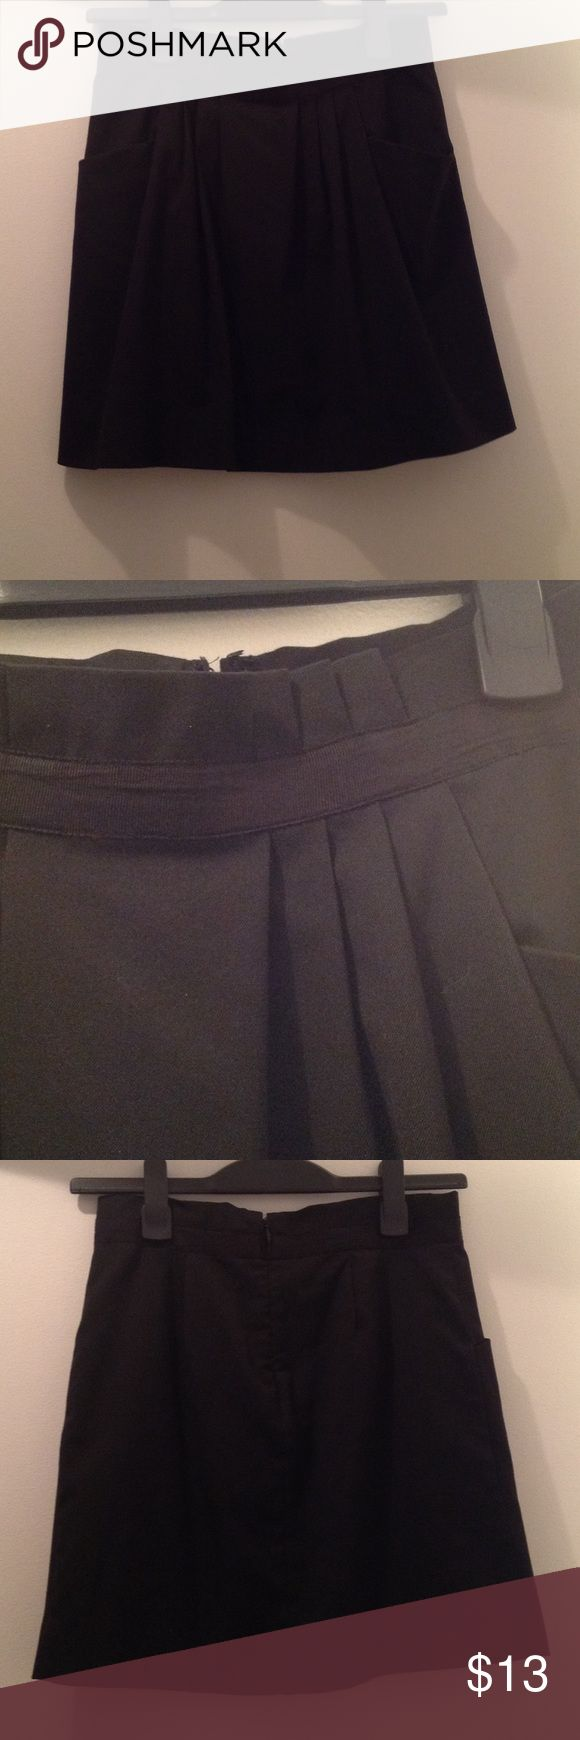 Gap skirt Fully lined black skirt with two front pockets. Zips up in the back. A few pleats in the front GAP Skirts